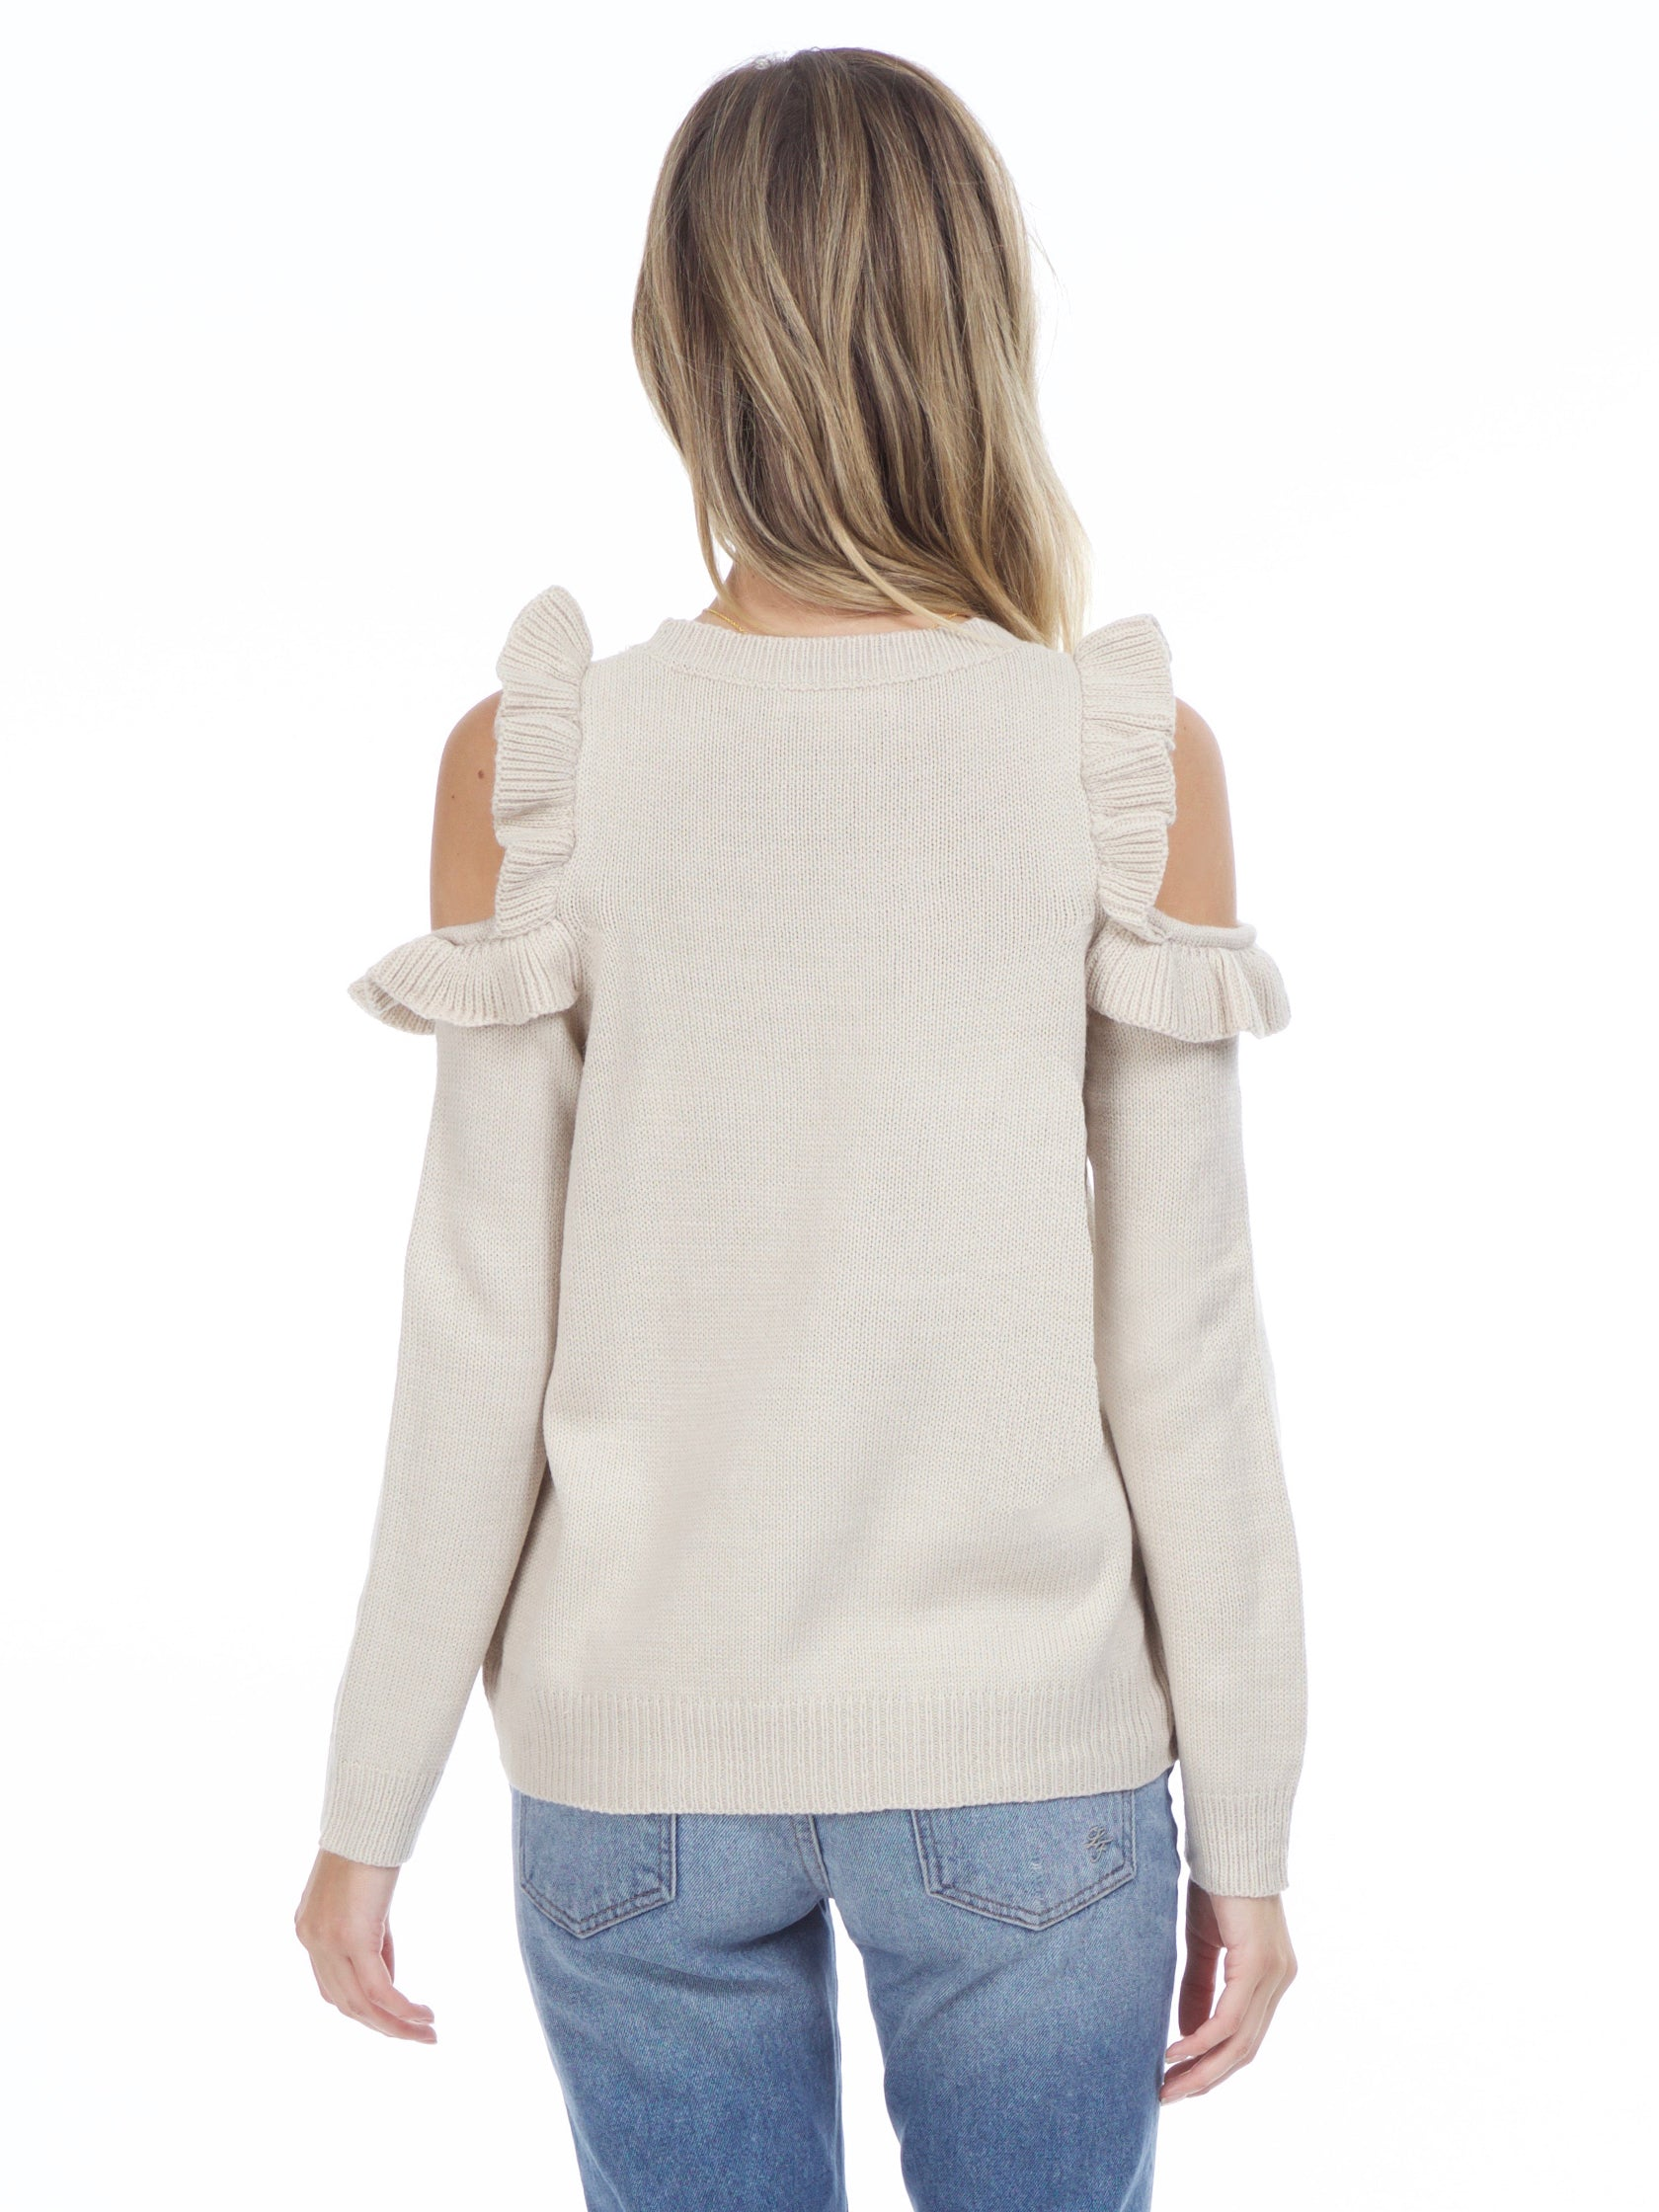 Women outfit in a sweater rental from FashionPass called Harmony Cold Shoulder Sweater